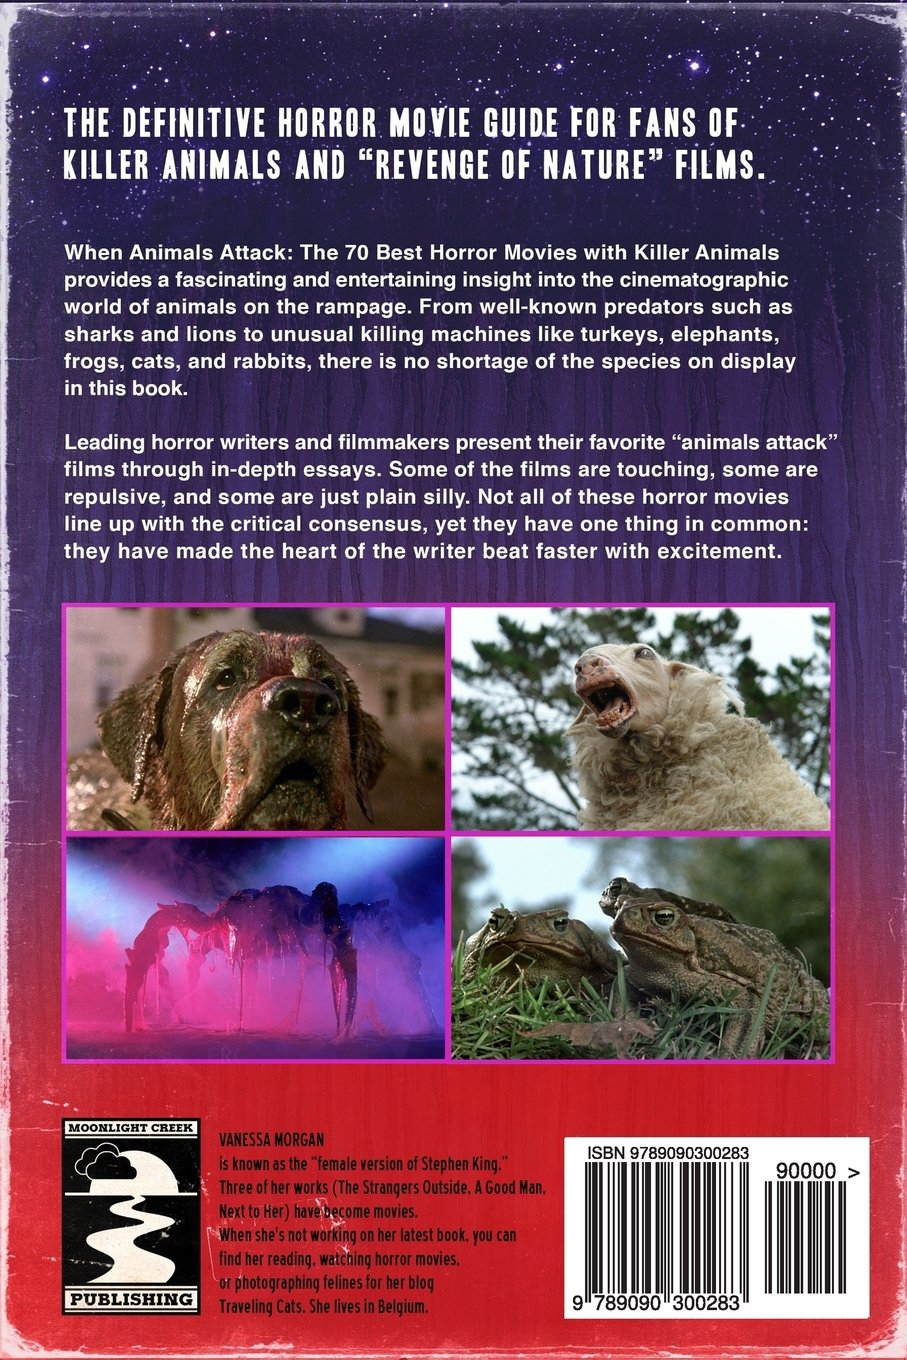 when animals attack the 70 best horror movies killer animals when animals attack the 70 best horror movies killer animals co uk vanessa morgan 9789090300283 books